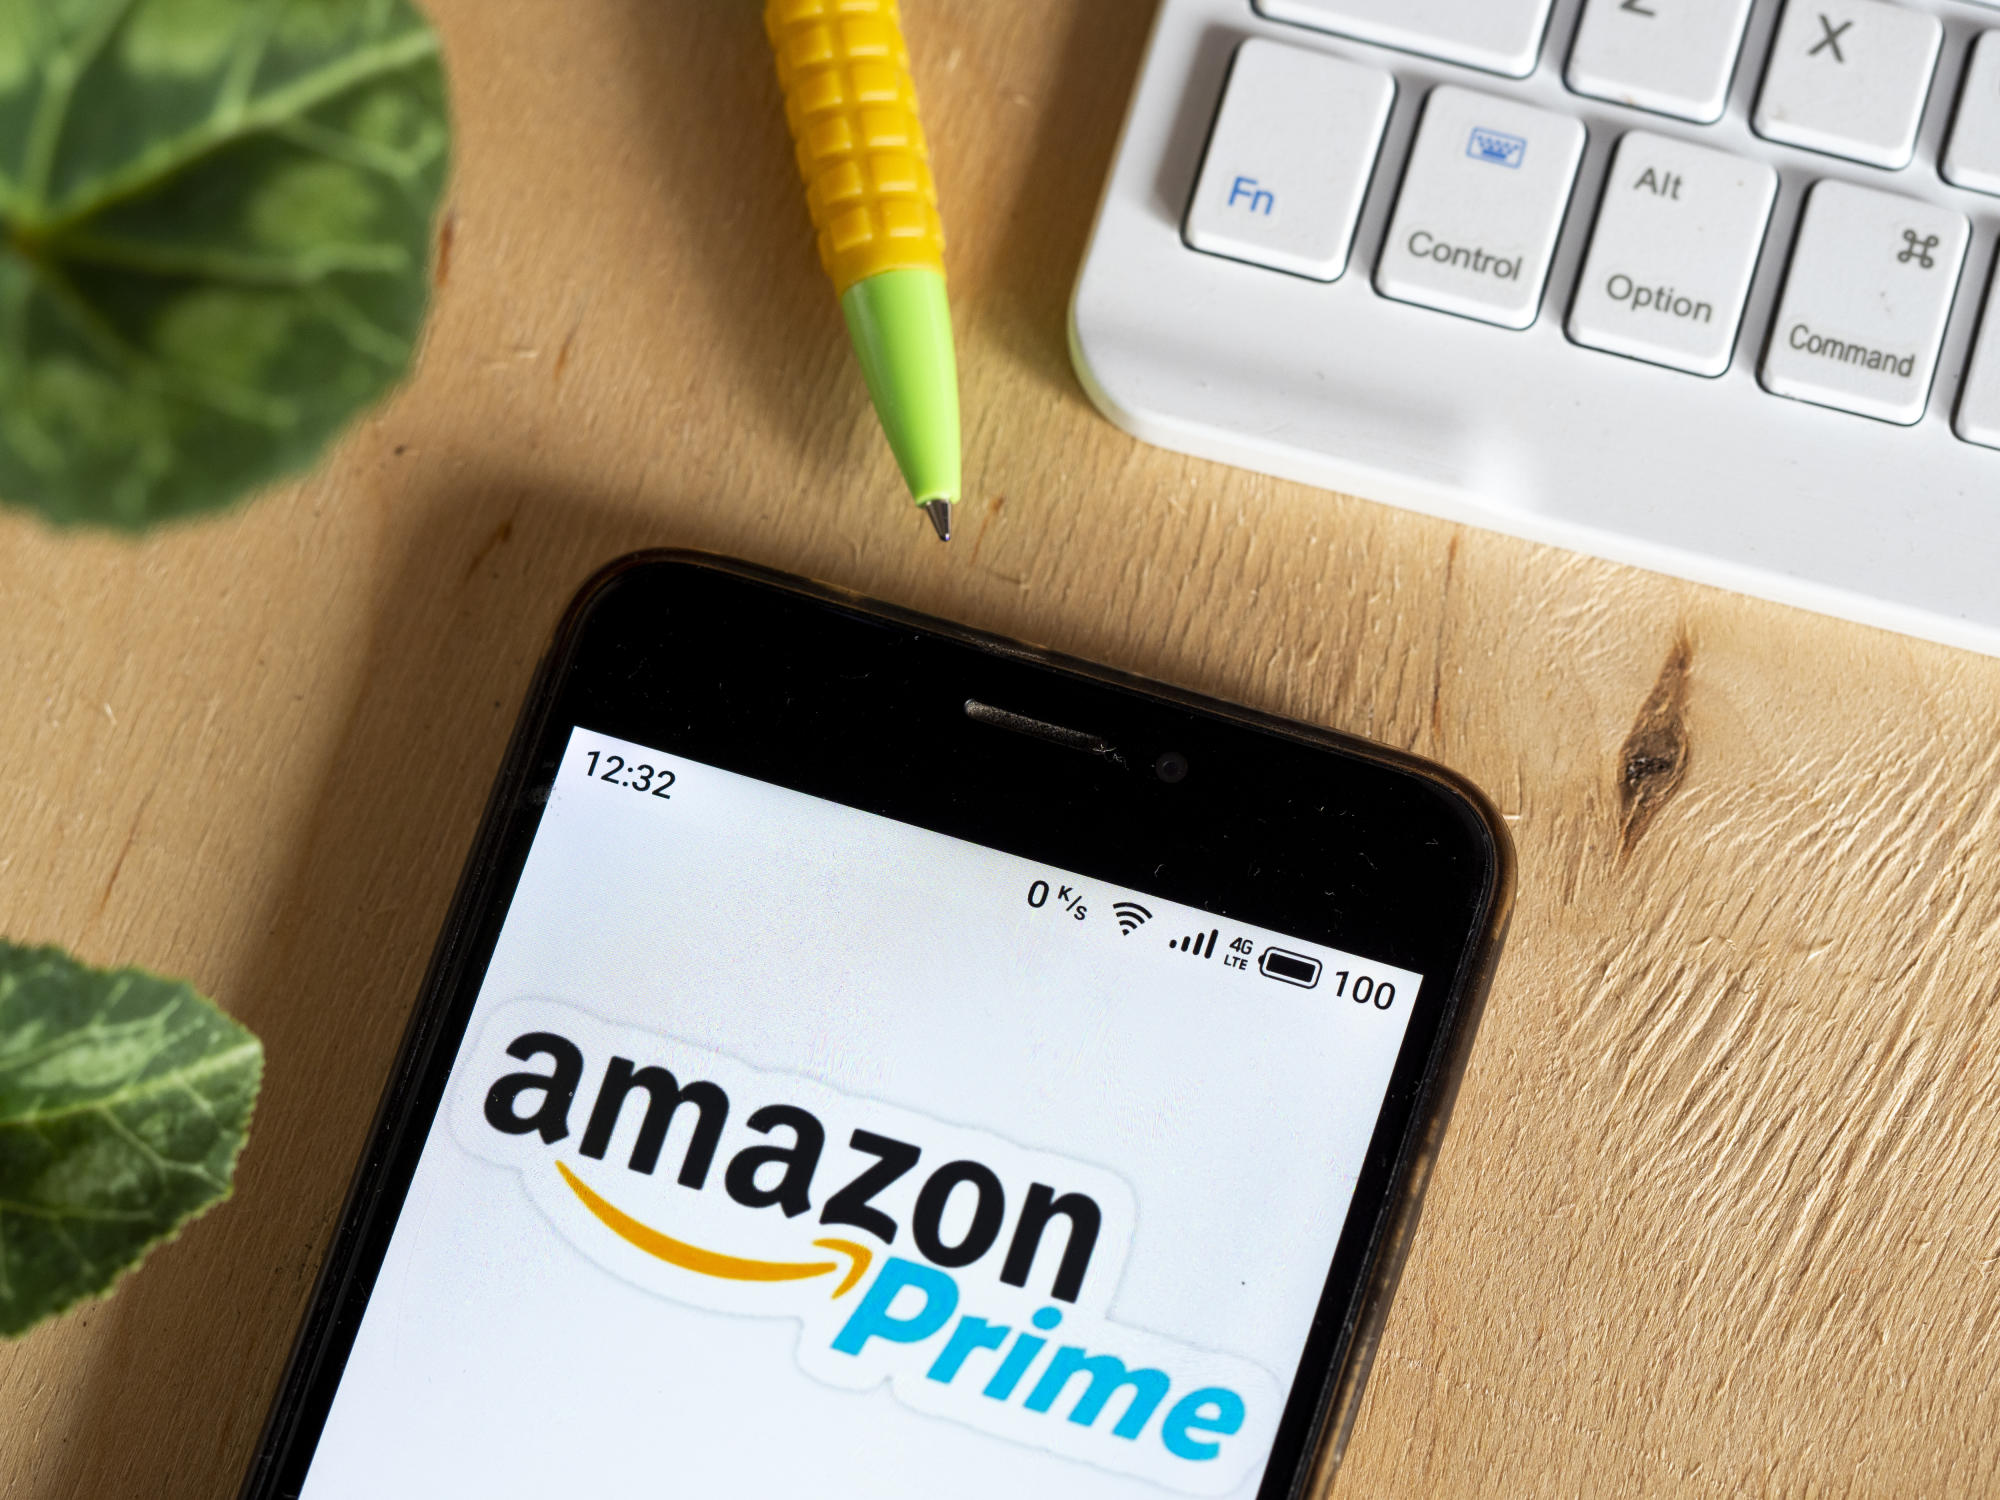 So you can take advantage of Amazon Prime Day offers in Mexico without paying as a member